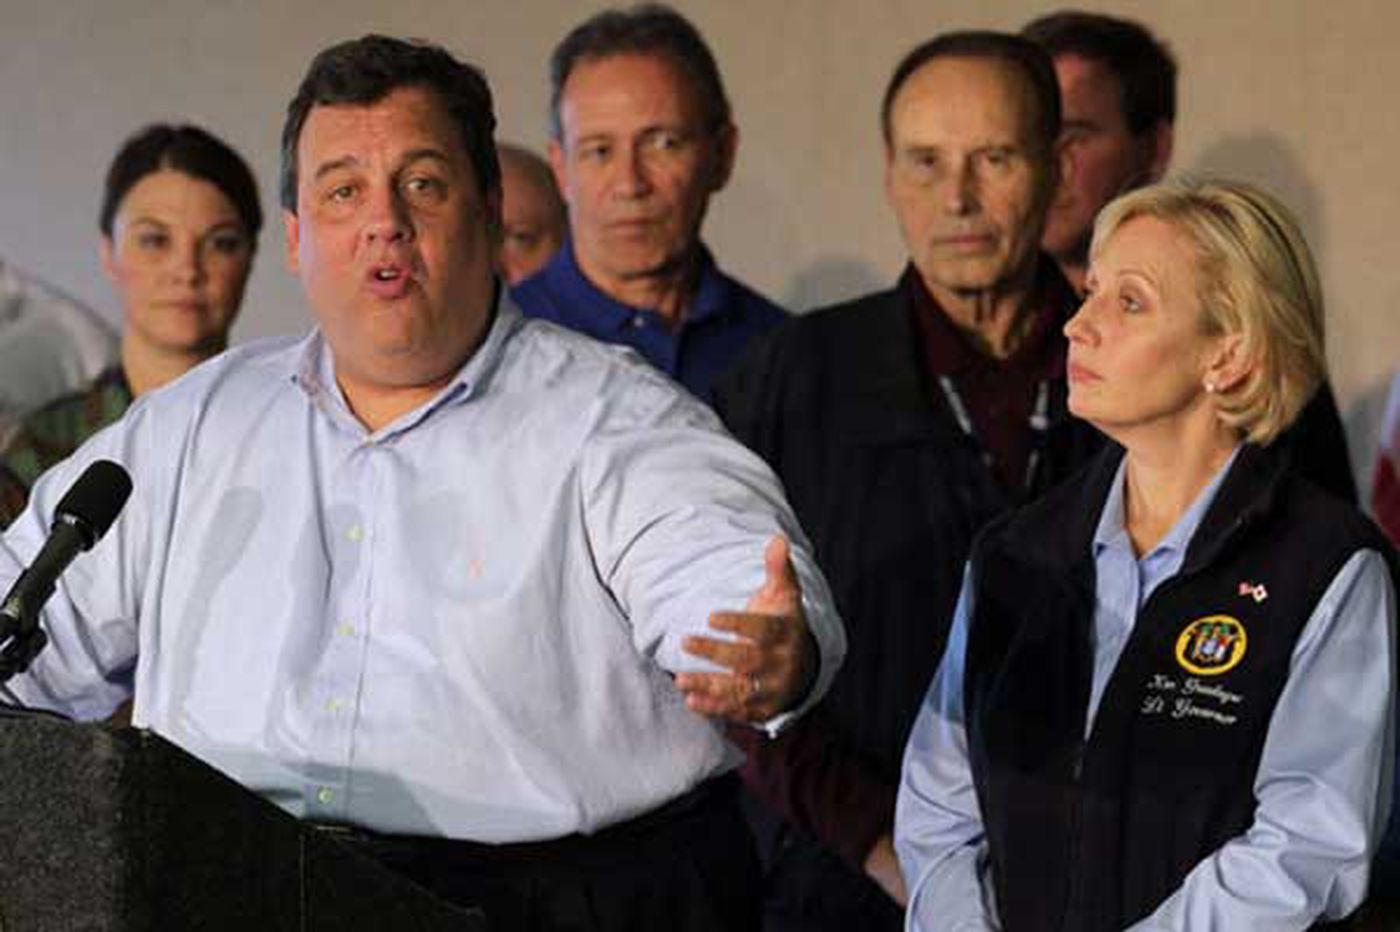 NJ Records Council helps Christie avoid election year scandal